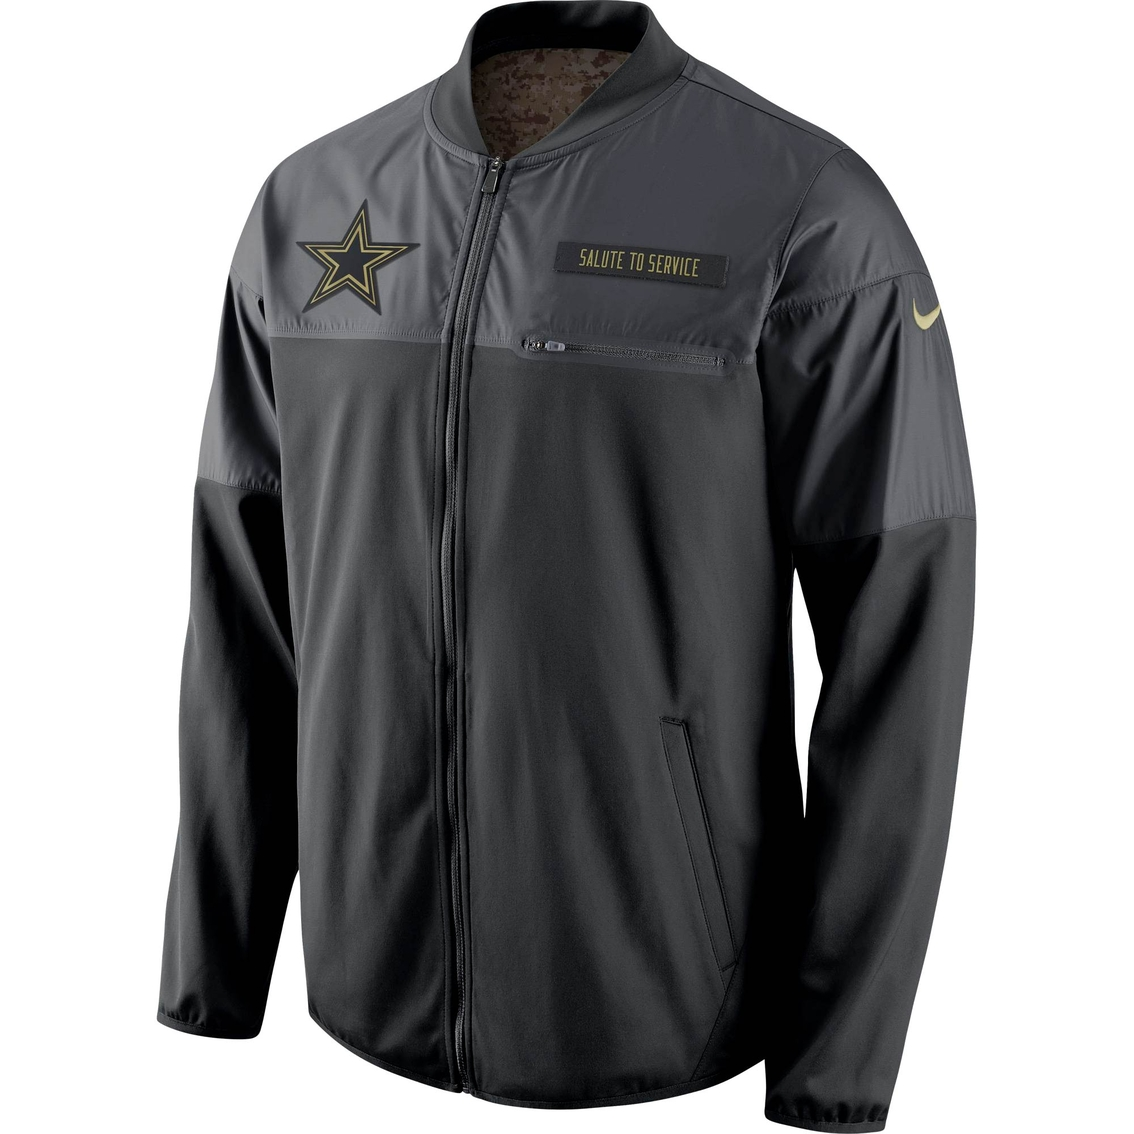 new product bb1c0 f14b7 Nike Nfl Dallas Cowboys Salute To Service Hybrid Jacket ...